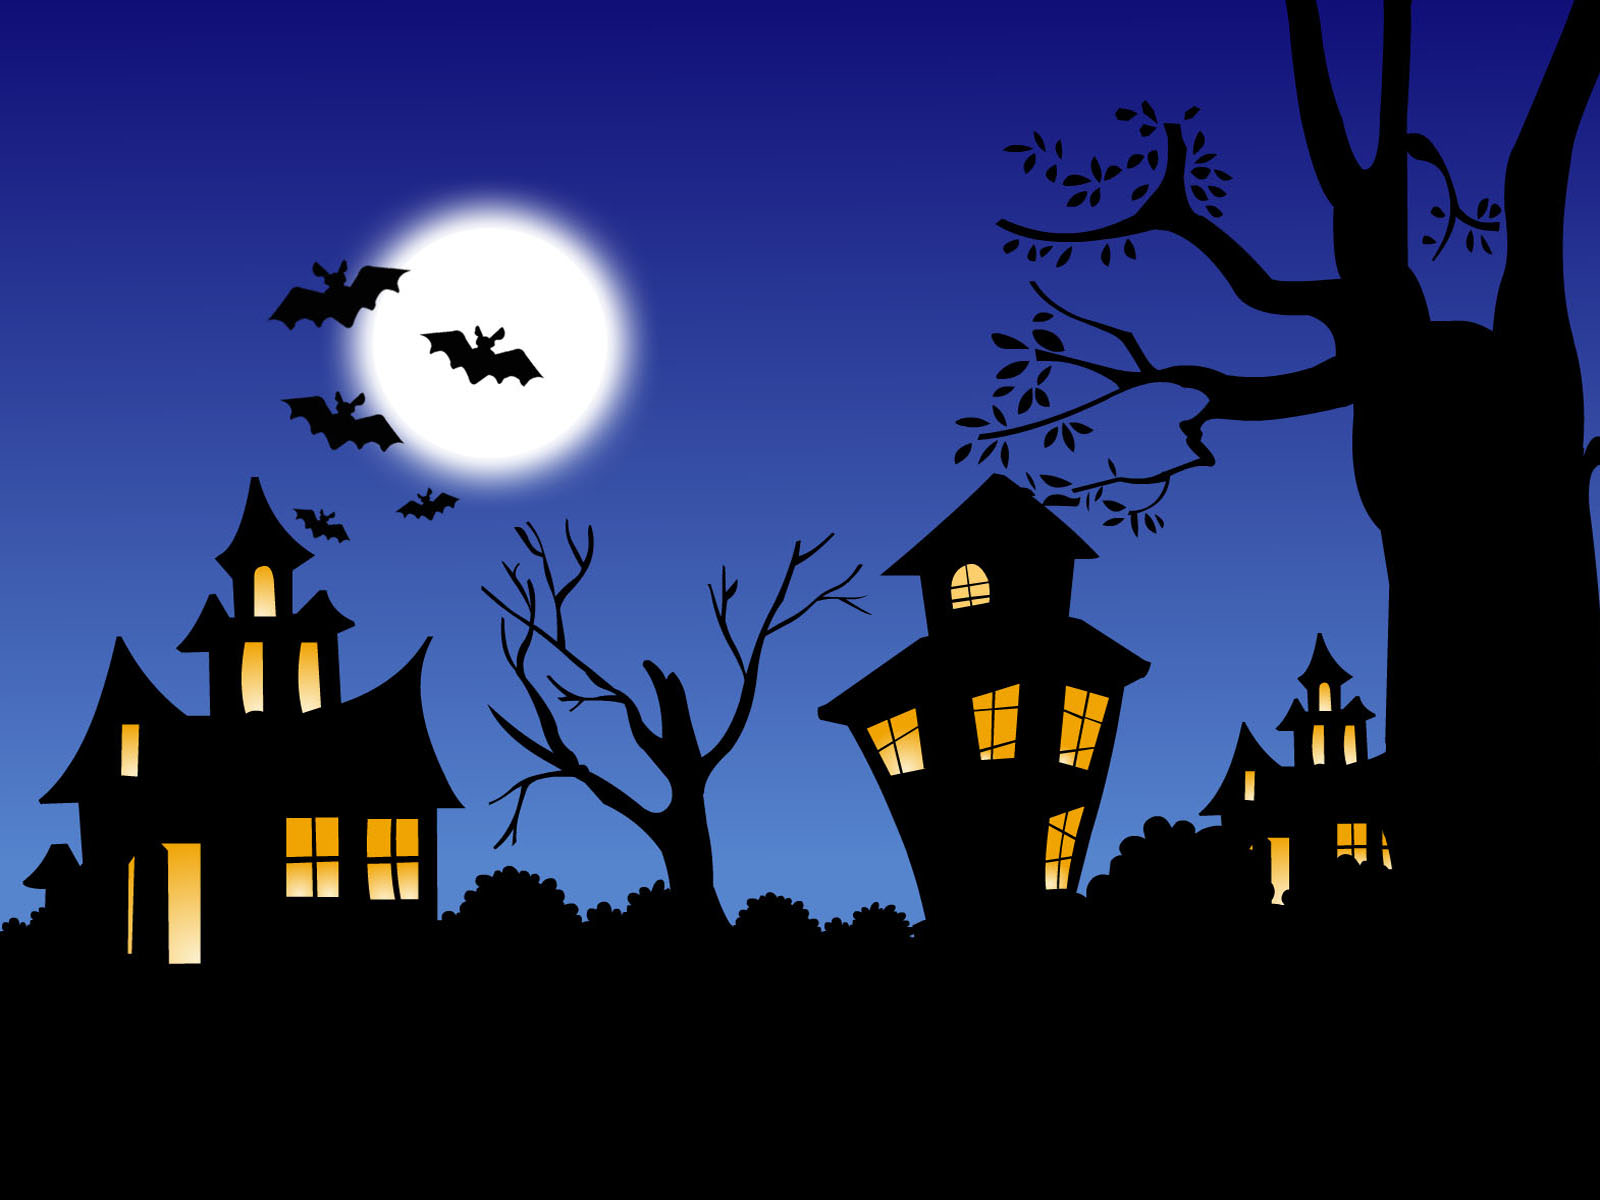 Halloween desktop wallpaper 16 1600x1200